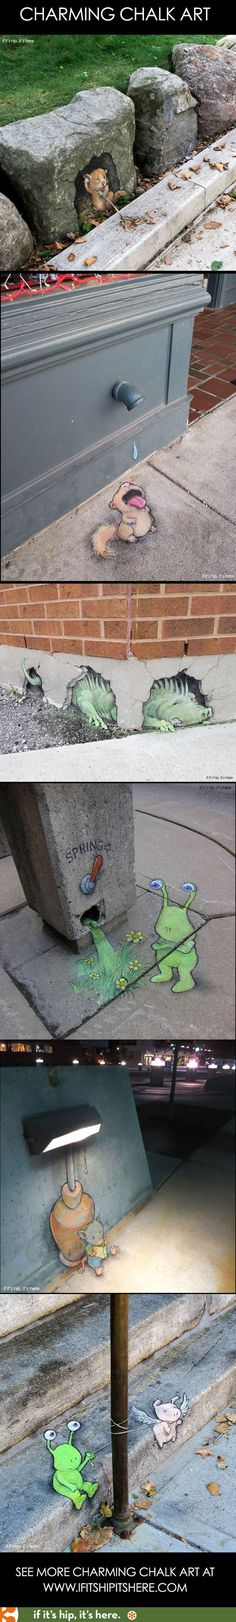 The most adorable street art ever. See more at http://www.ifitshipitshere.com/street-artist-david-zinn/